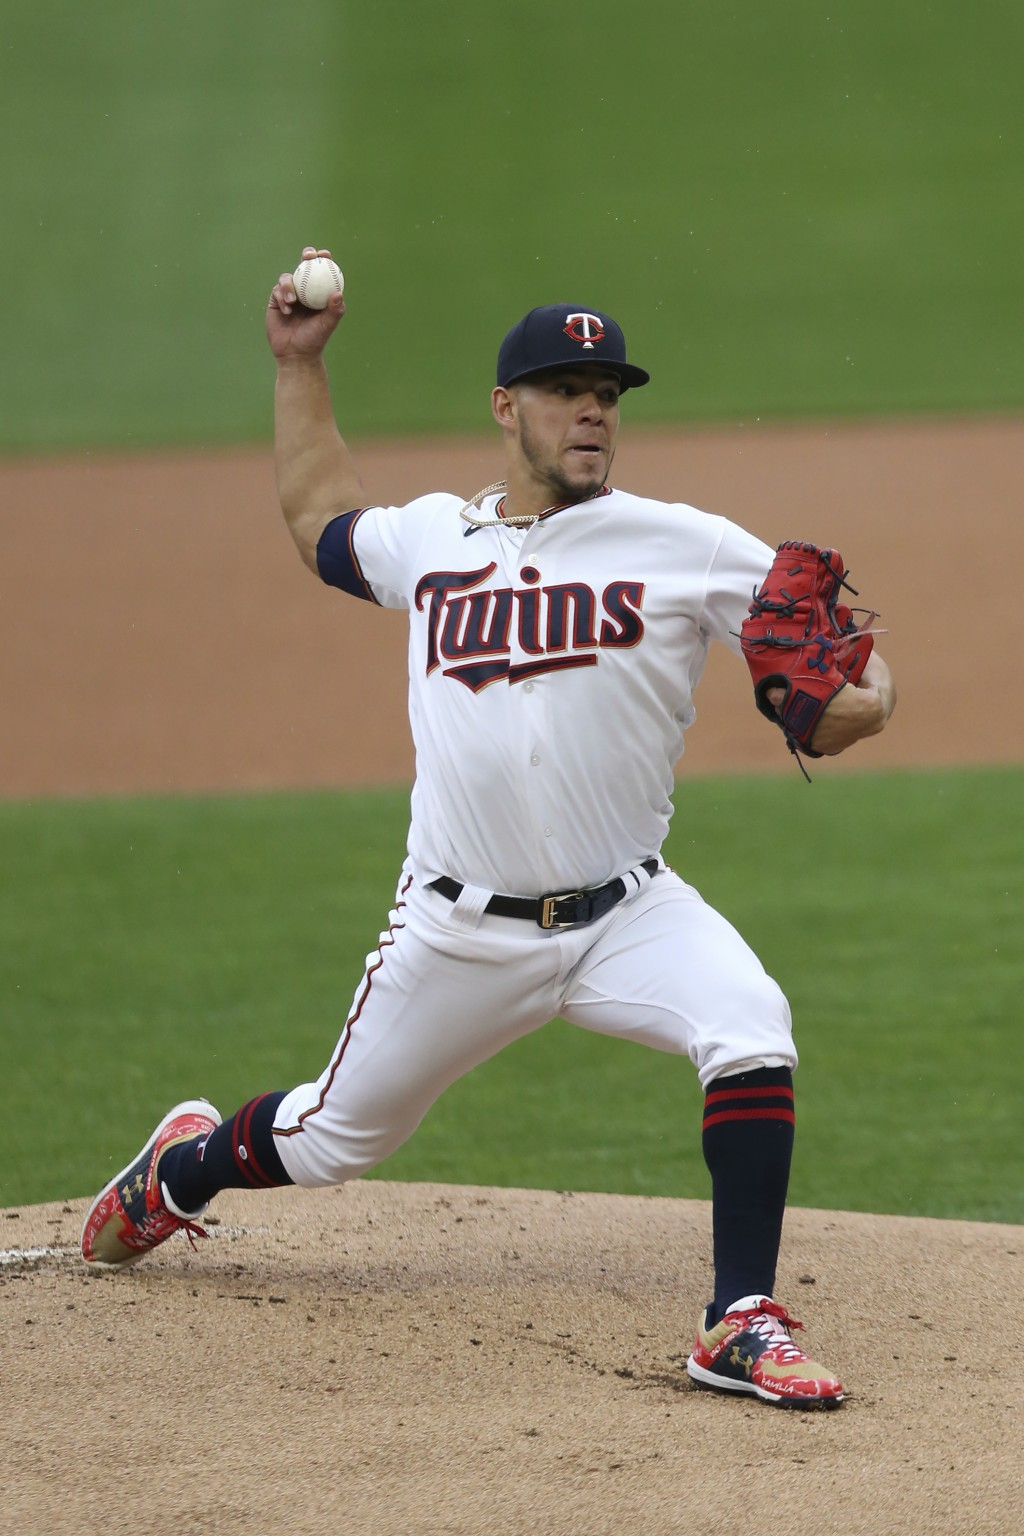 Minnesota Twins pitcher Jose Berrios throws against the Kansas City Royals during the first inning of a baseball game, Sunday, May 2, 2021, in Minneap...